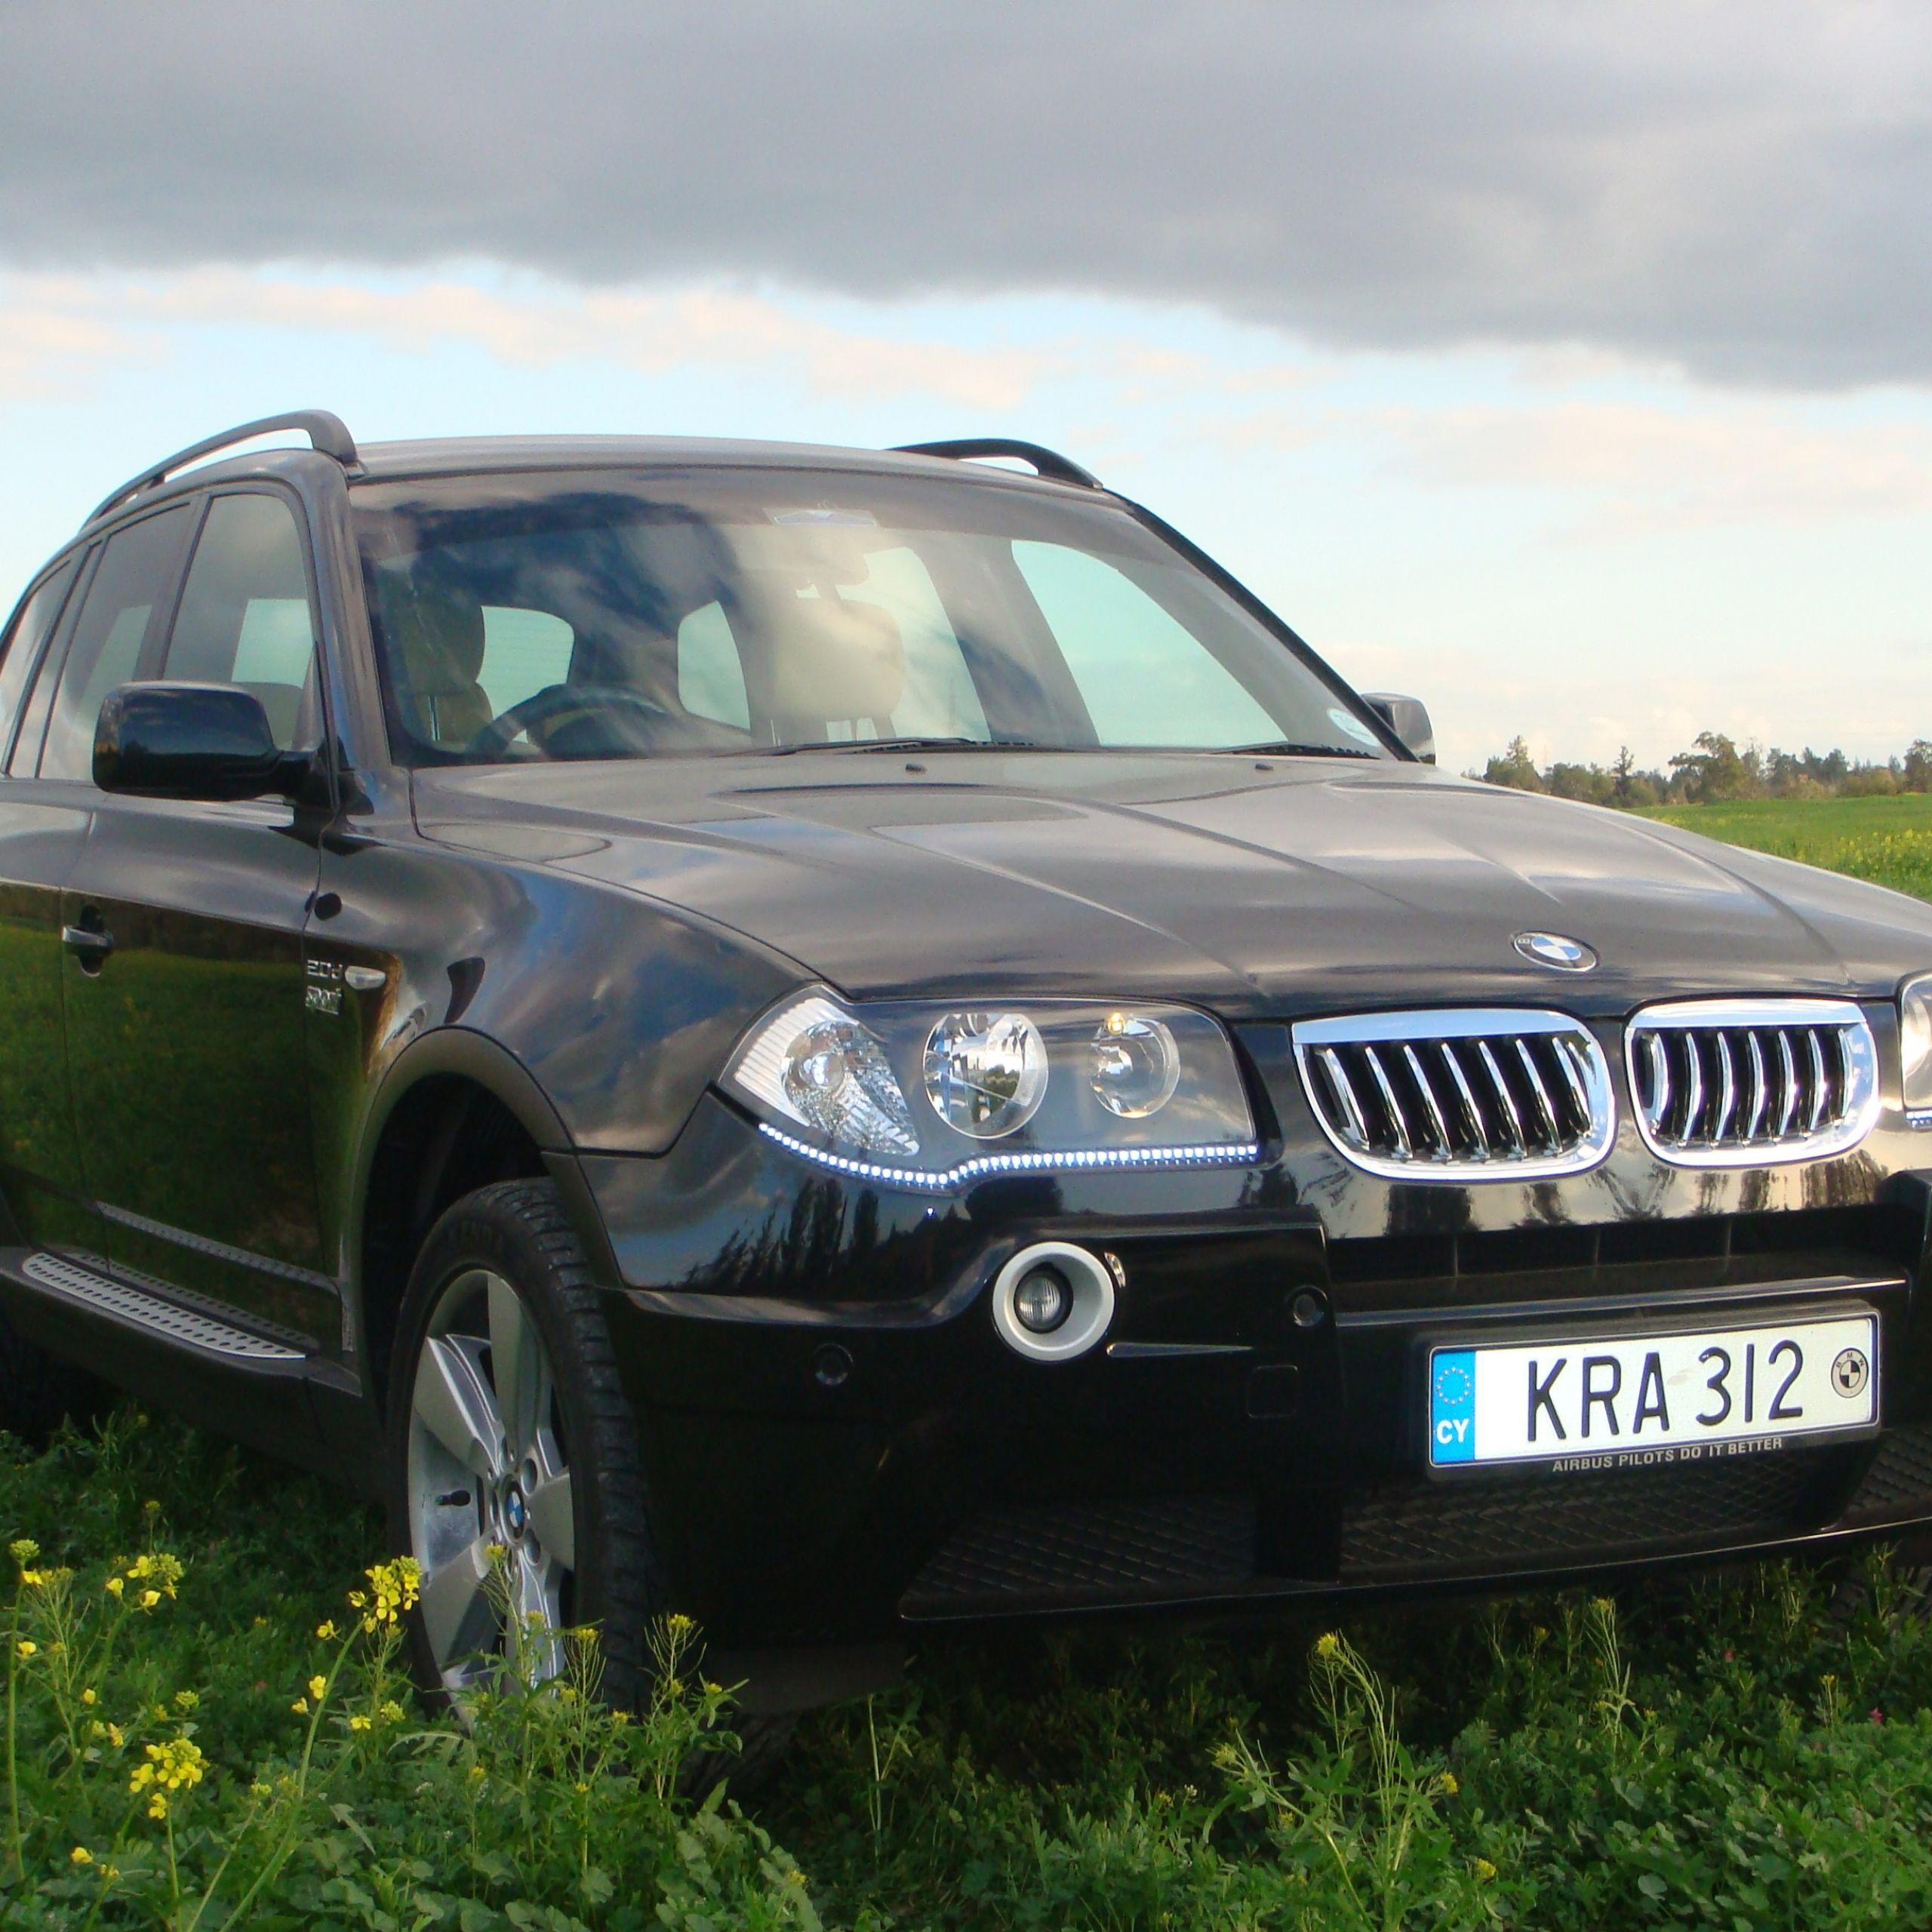 Best Used Suv Luxury 7 Best and Safest Used Vehicles to Buy Trust Auto